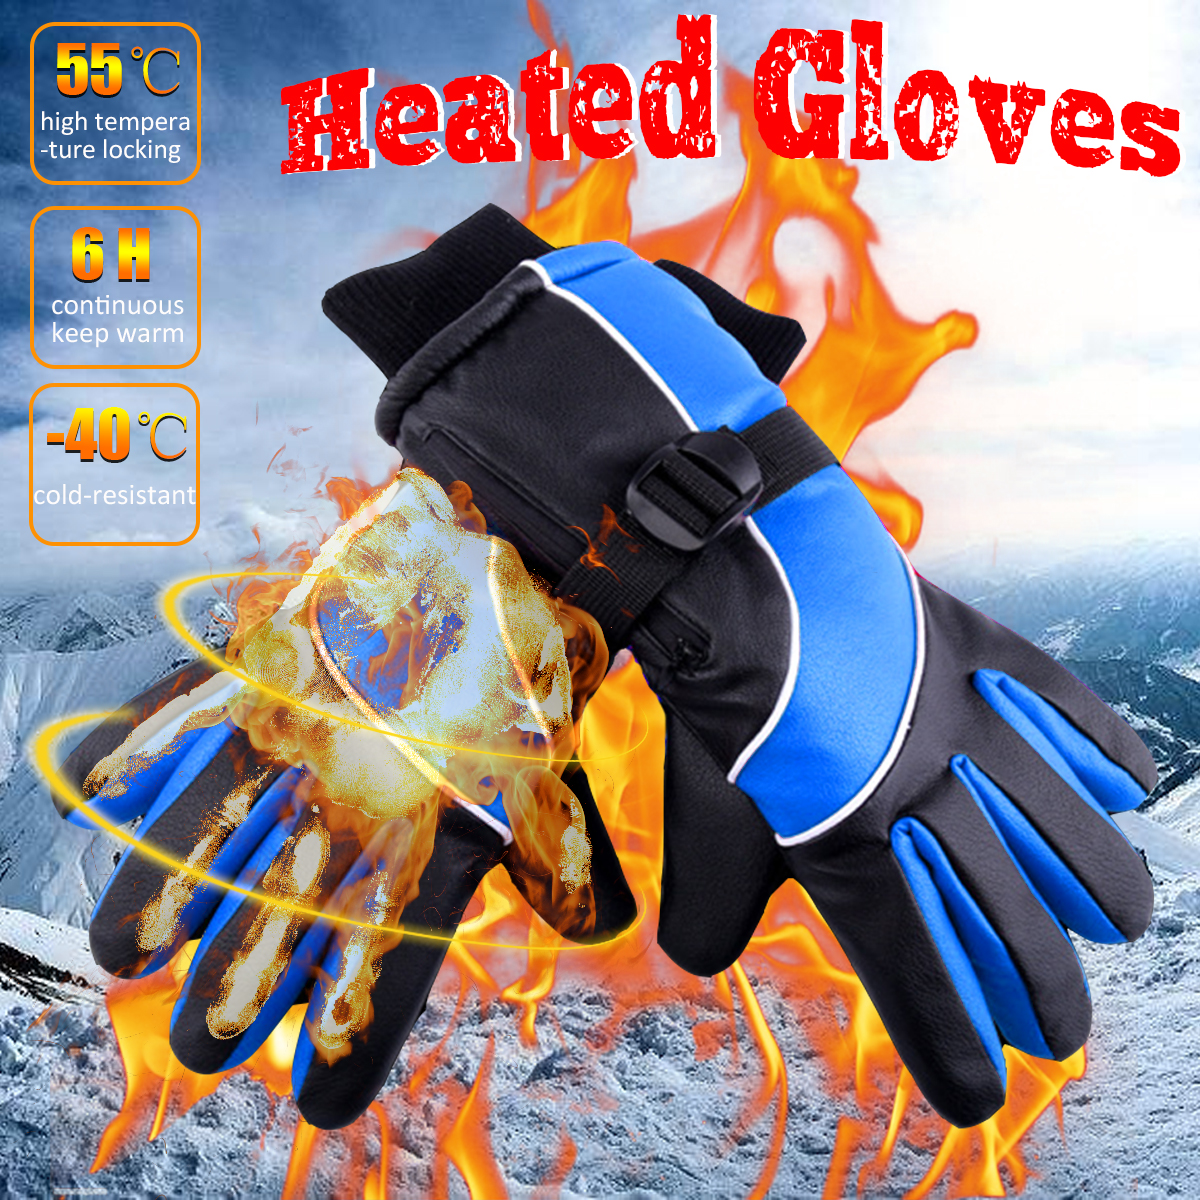 2600mAh 7.4V Electric Rechargeable Battery Heated Motorcycle Gloves Waterproof Winter Warm Hand Safety Gloves2600mAh 7.4V Electric Rechargeable Battery Heated Motorcycle Gloves Waterproof Winter Warm Hand Safety Gloves